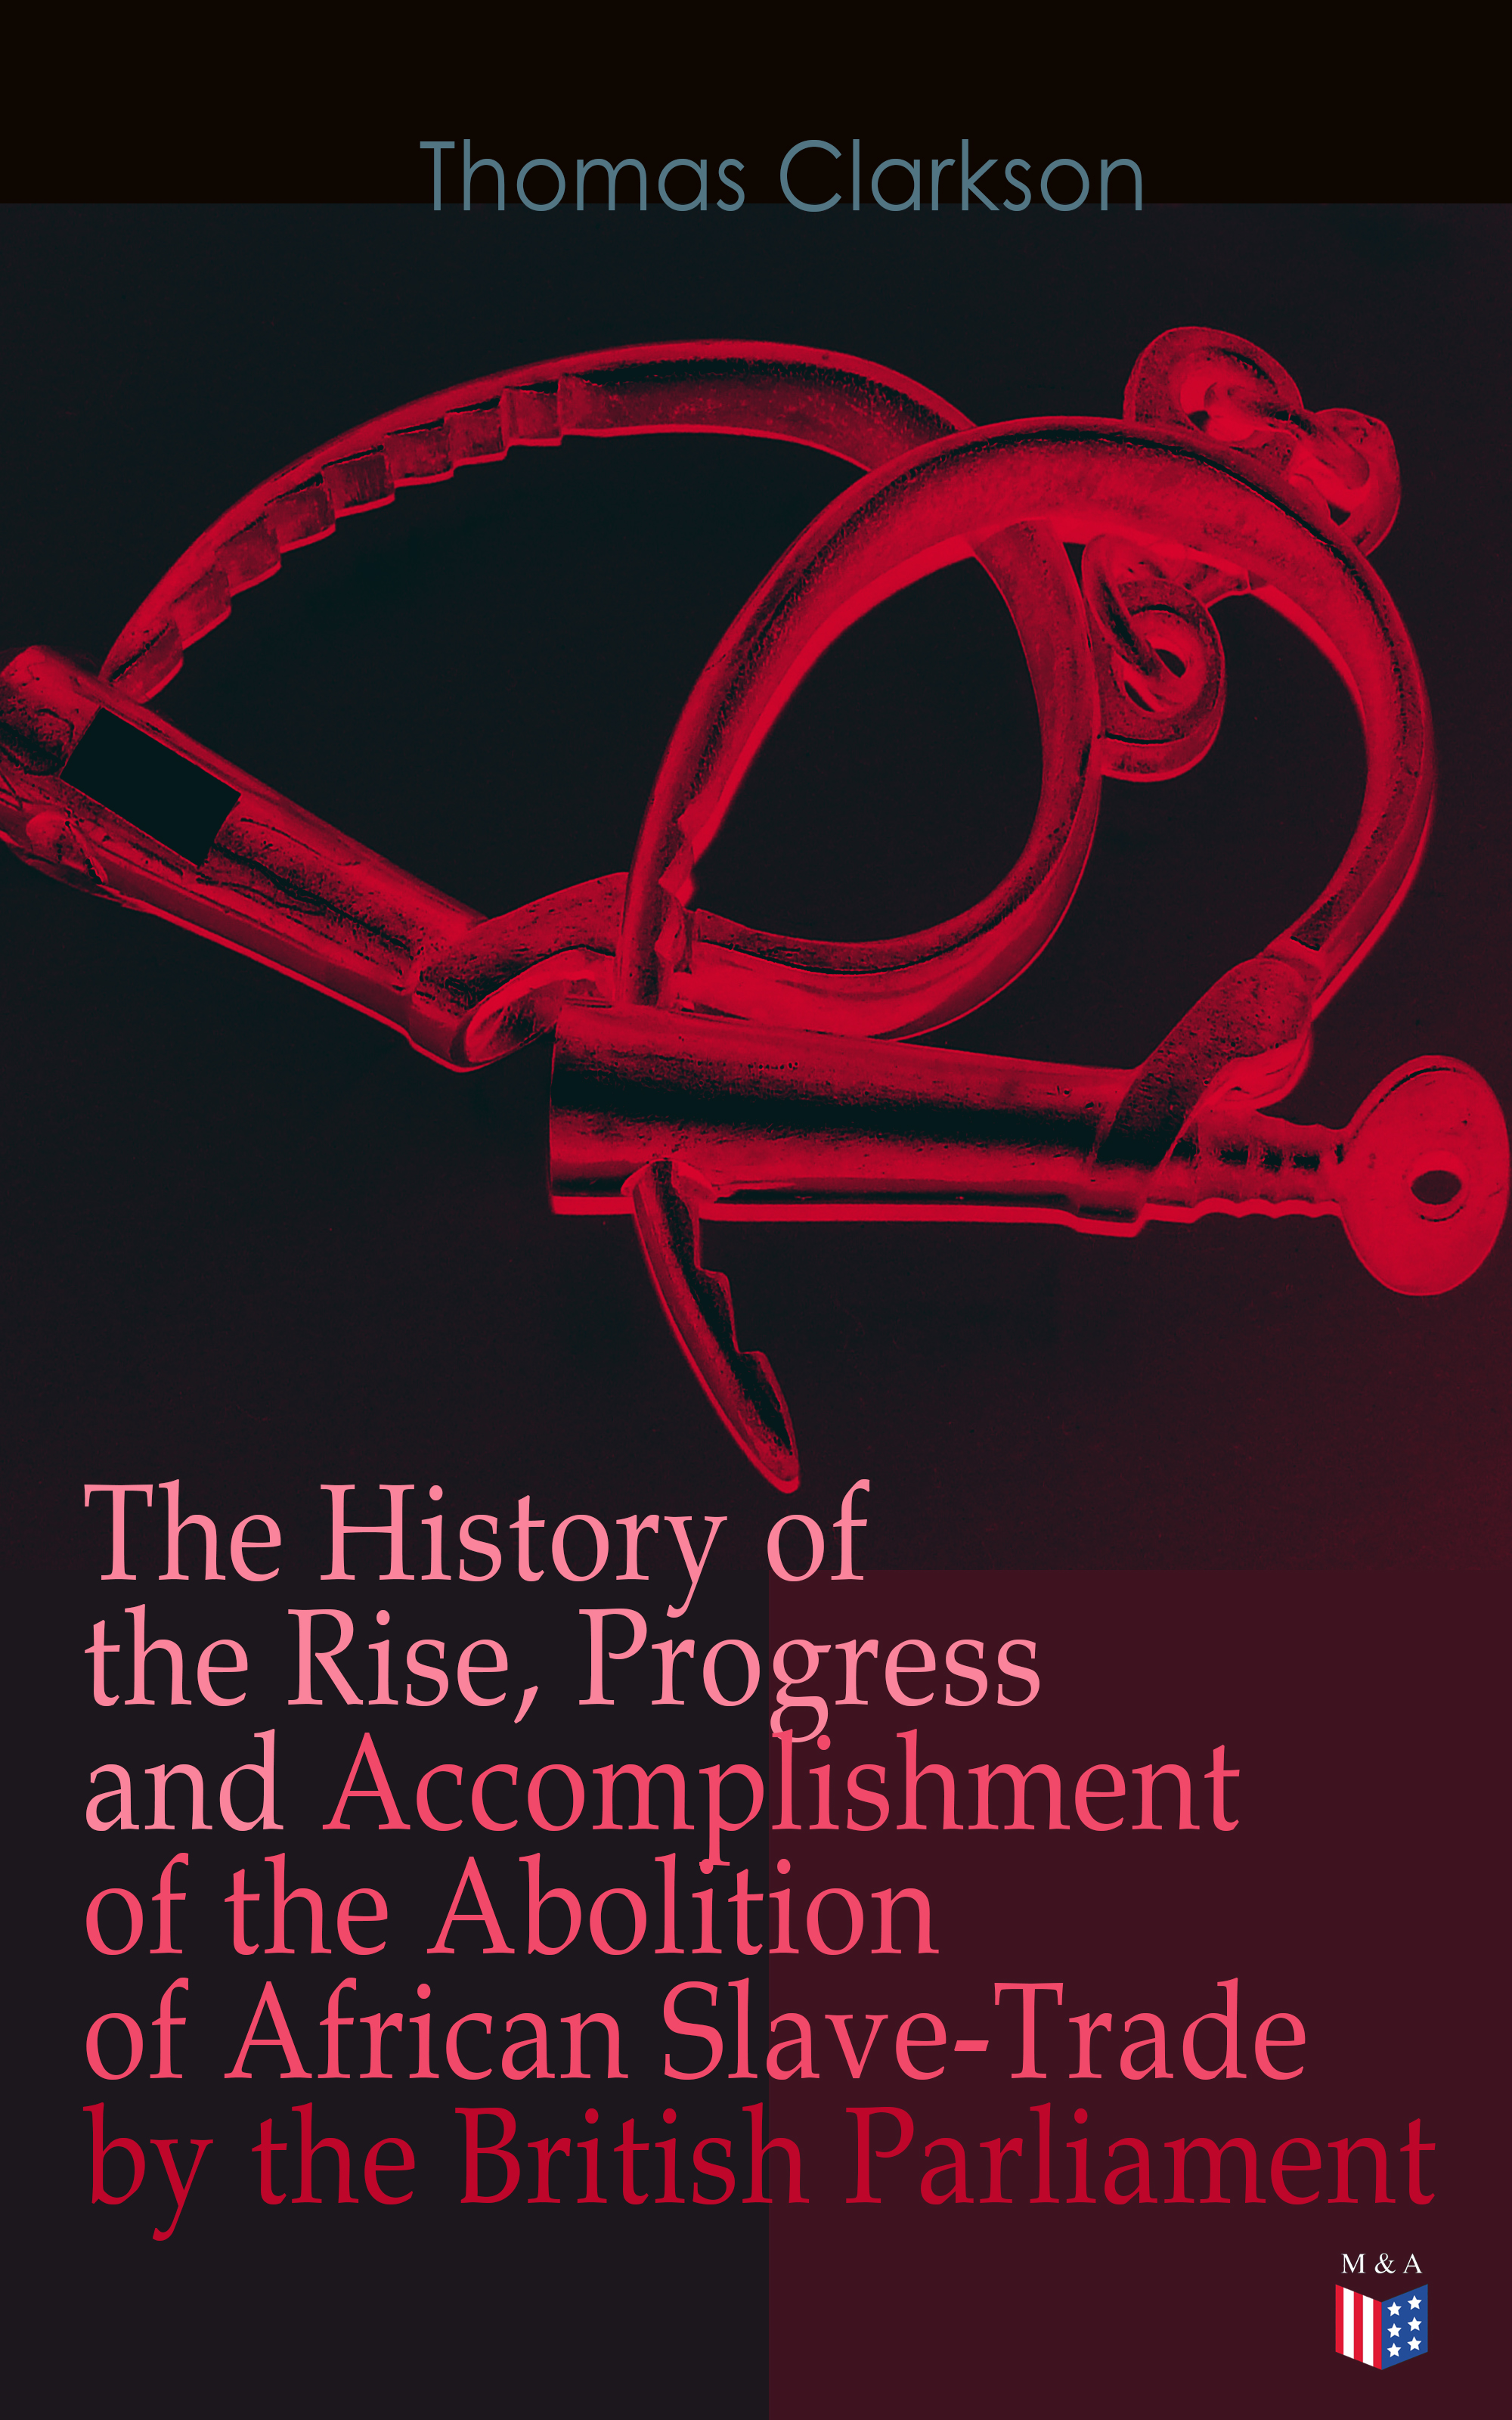 Thomas Clarkson The History of the Rise, Progress and Accomplishment of the Abolition of African Slave-Trade by the British Parliament kelly clarkson kelly clarkson meaning of life